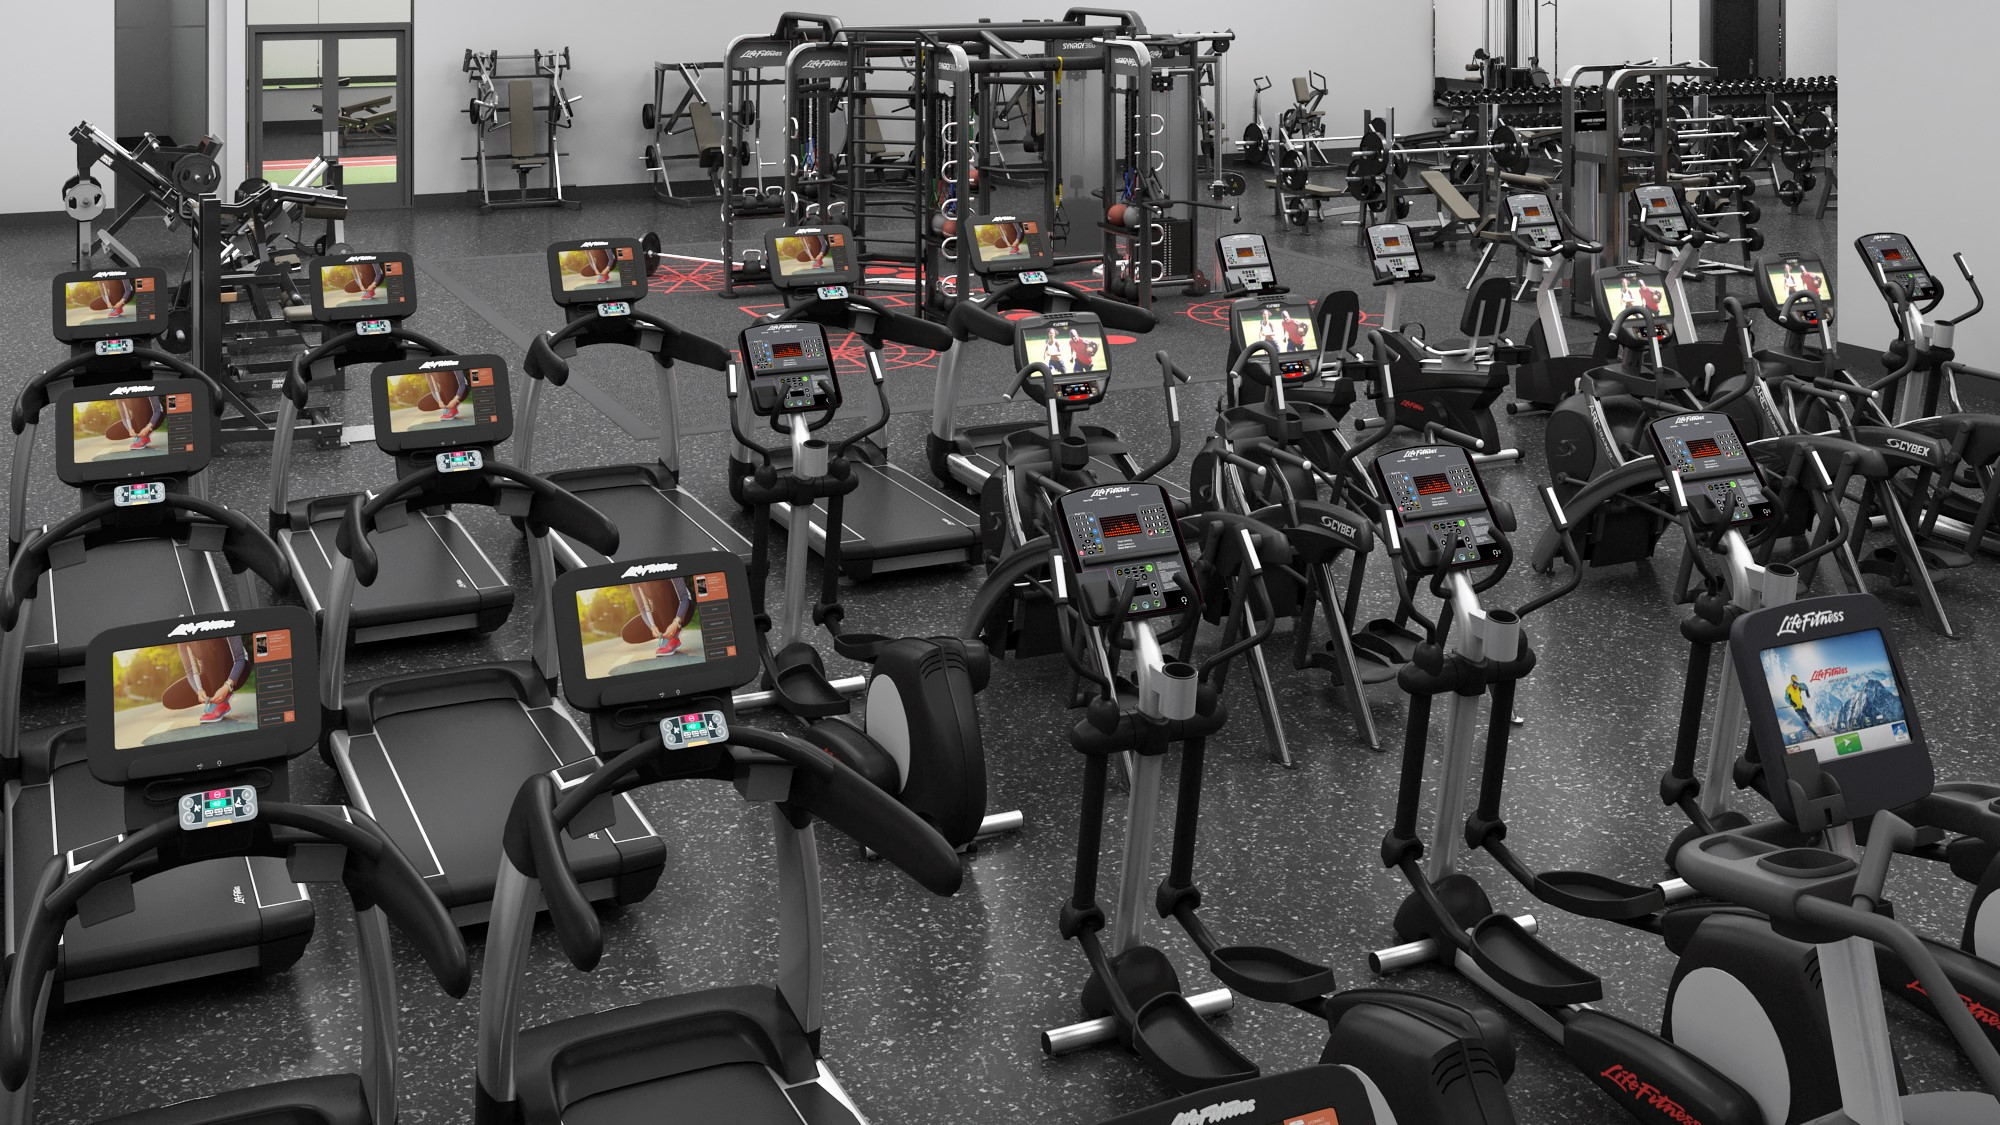 You're also going to use the latest in cardio equipment